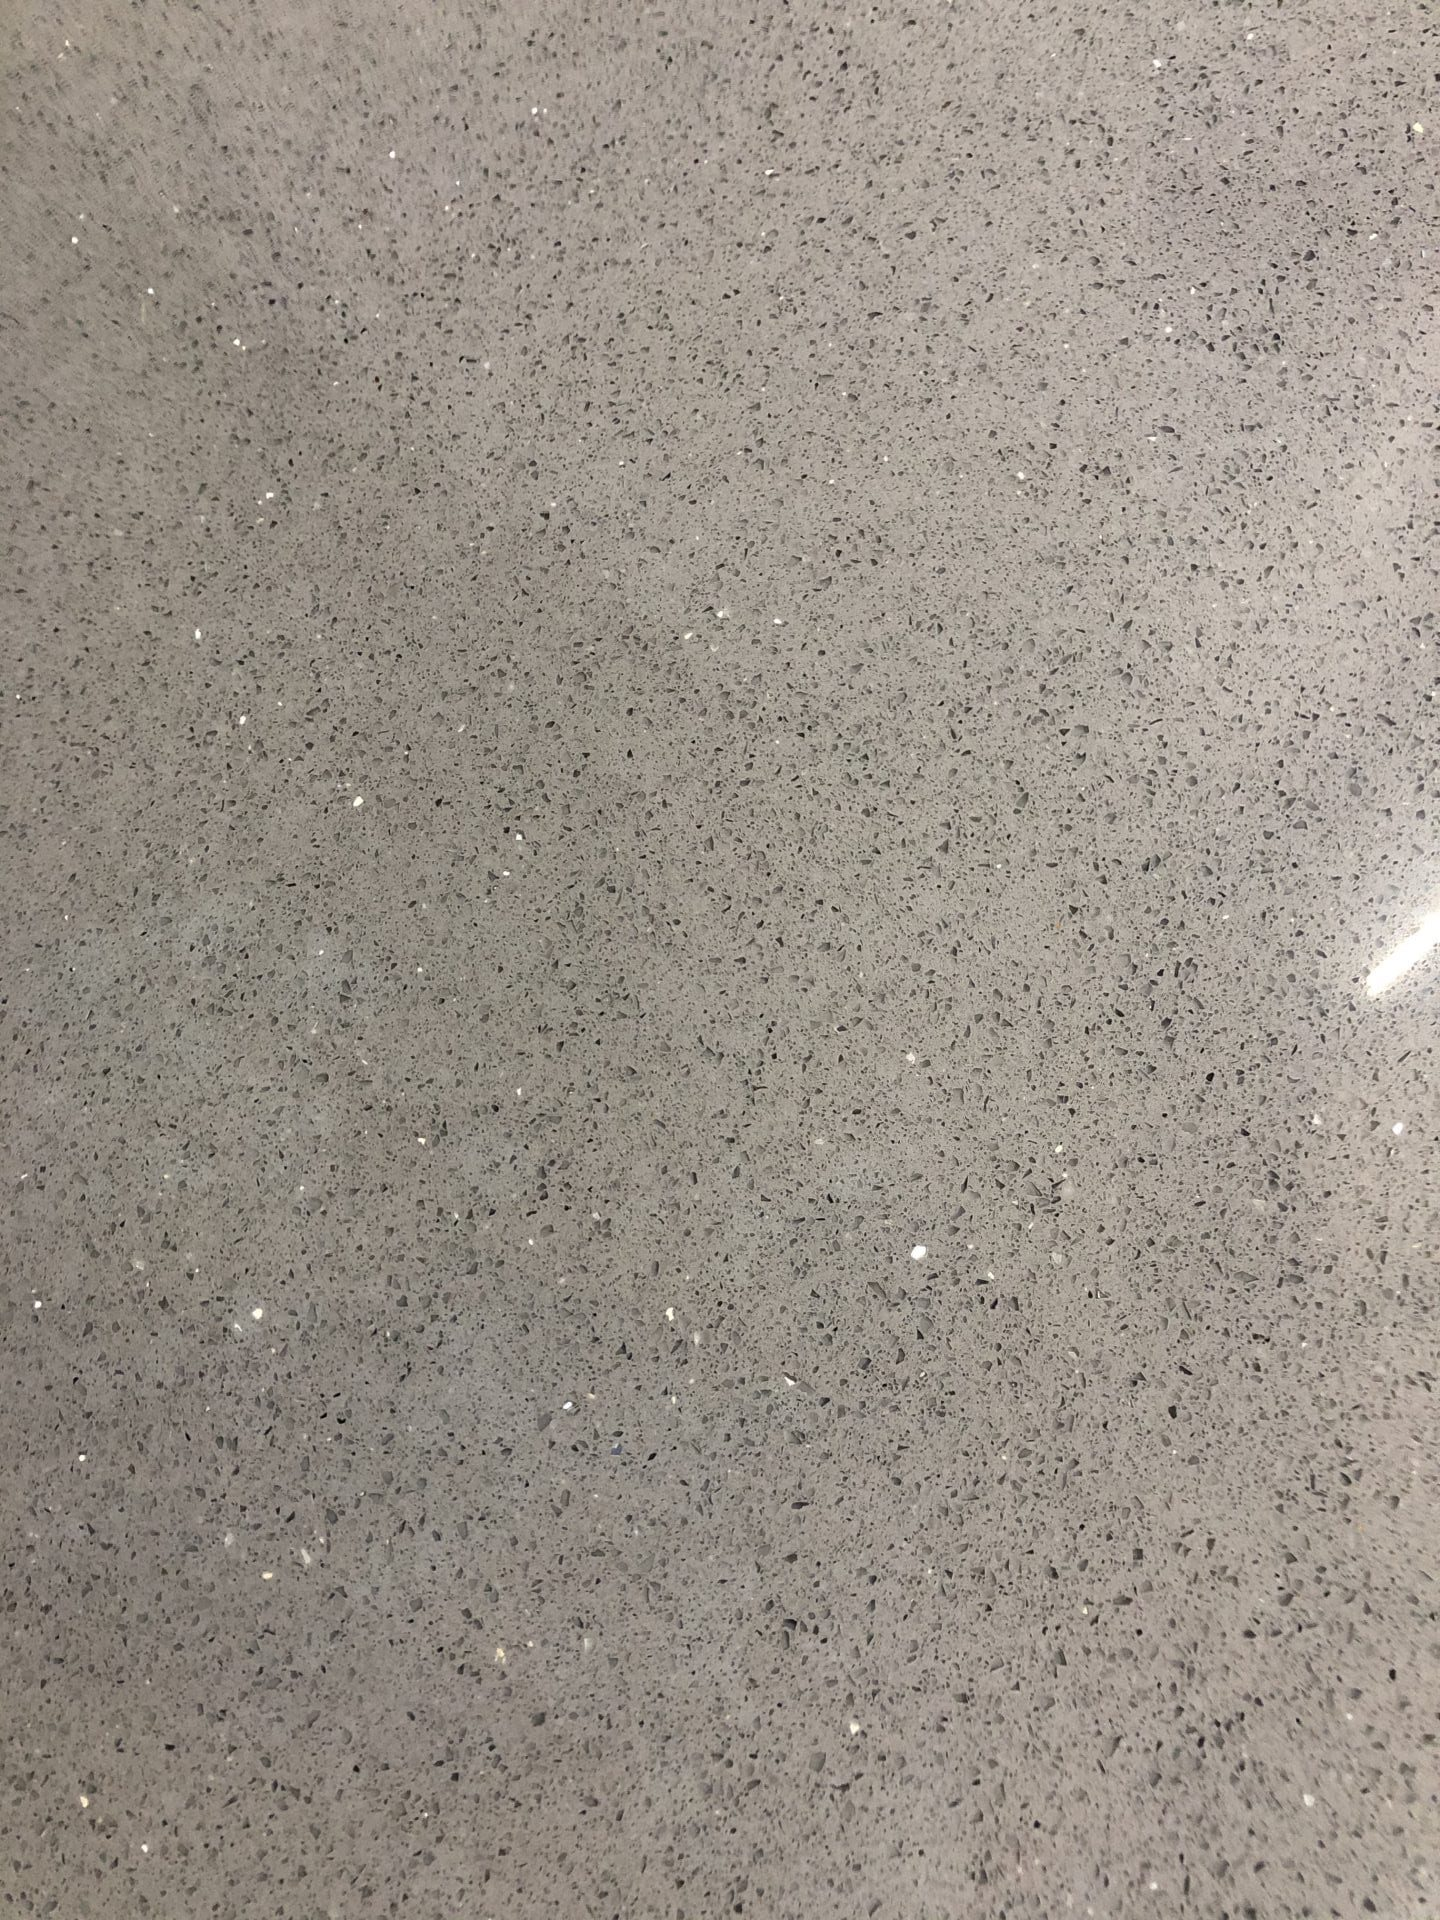 grey sparkle countertop by Magnolia Countertops. A Countertop fabricator of Granite Countertops, Marble Countertops, and Quartz Countertops in Cookeville and Crossville TN.